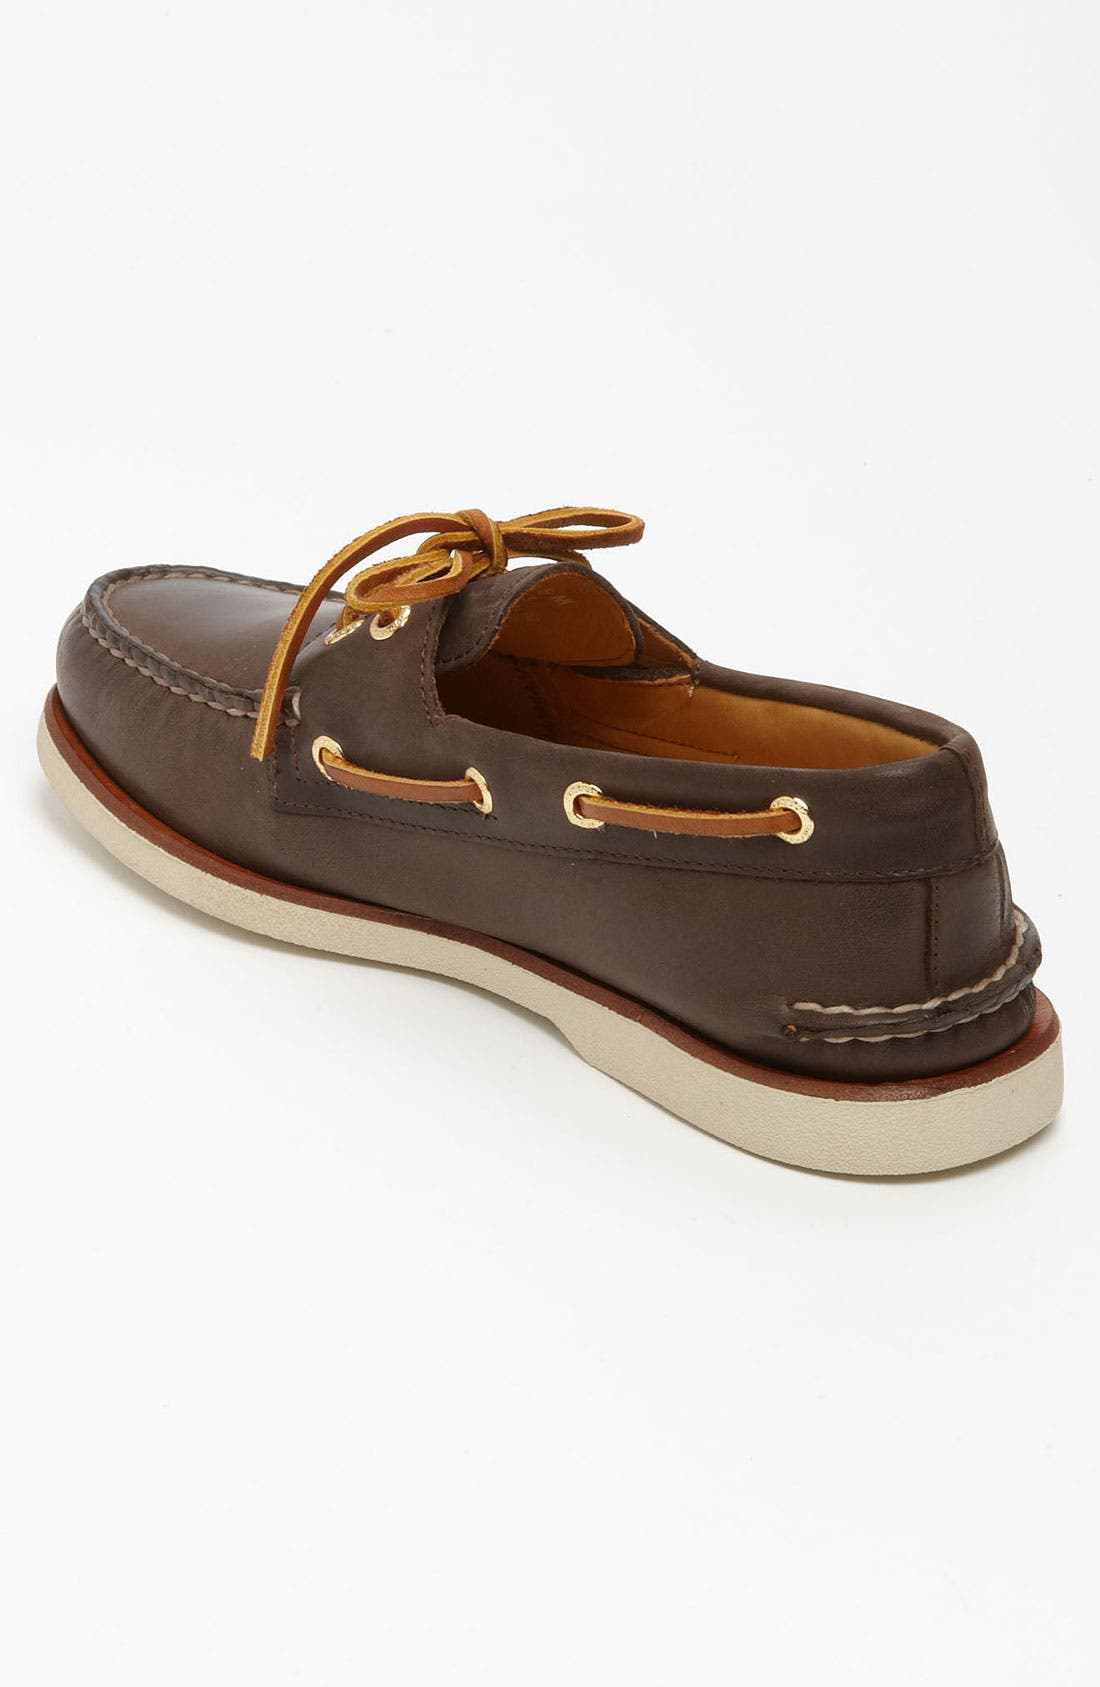 'Gold Cup - Authentic Original' Boat Shoe,                             Alternate thumbnail 2, color,                             DARK BROWN LEATHER